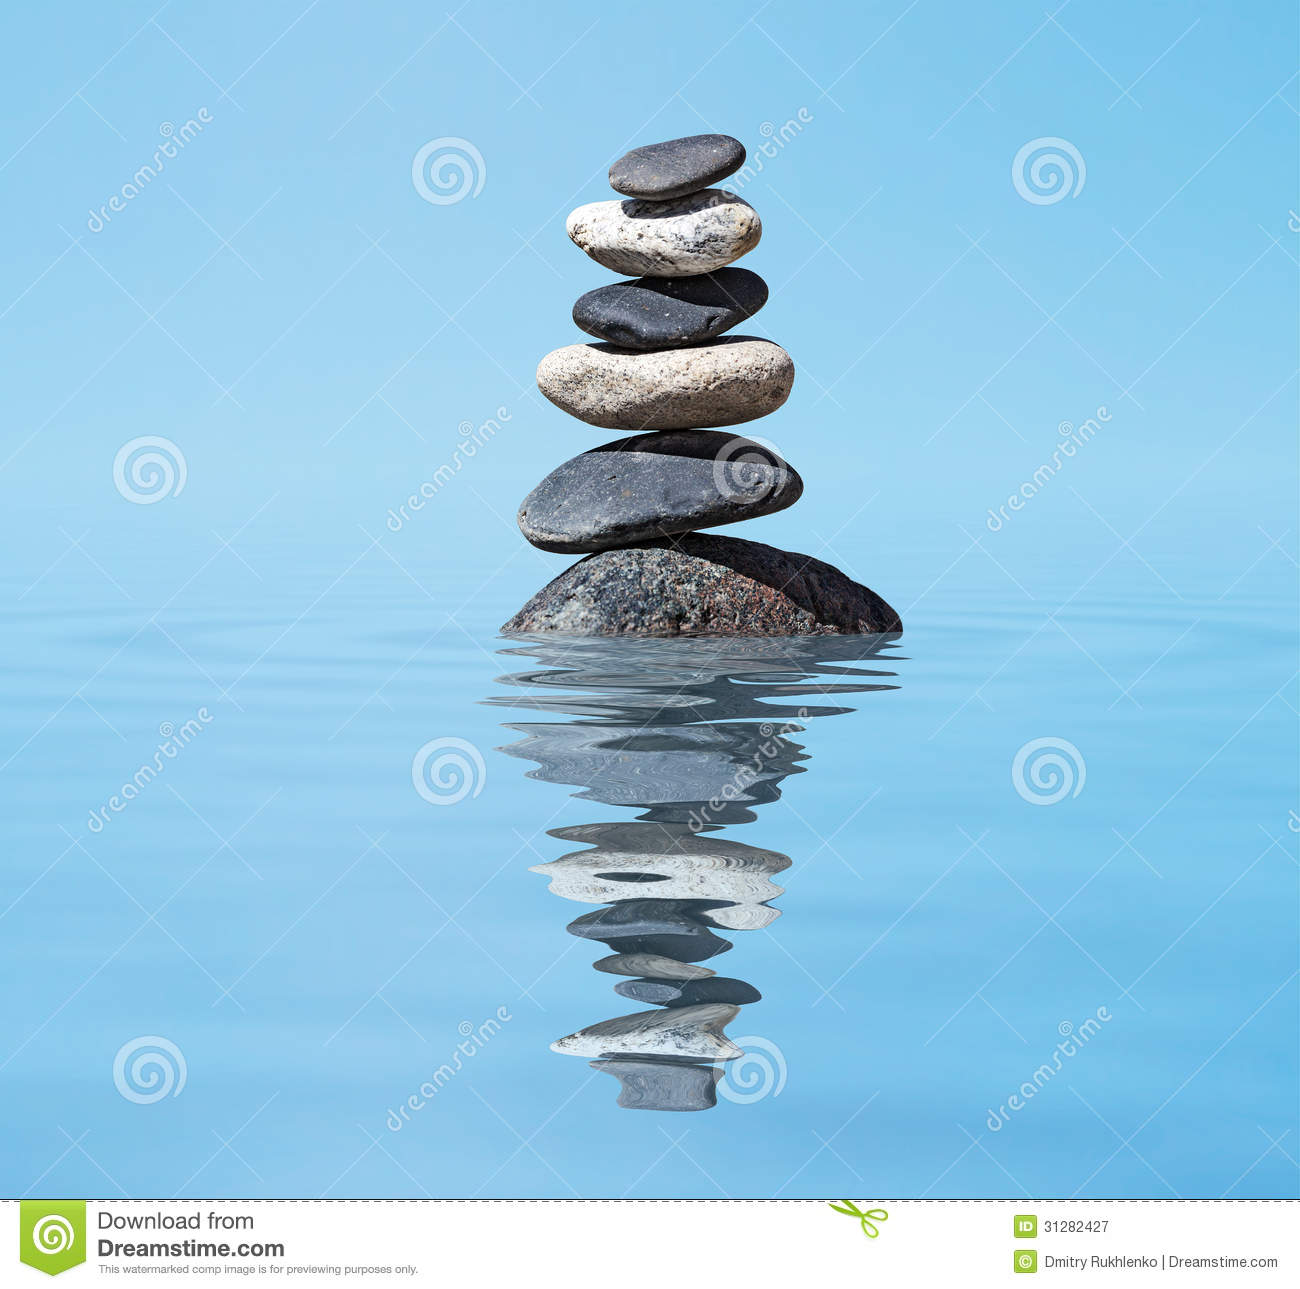 zen balanced stones stack in lake balance peace silence concept royalty free stock photography. Black Bedroom Furniture Sets. Home Design Ideas